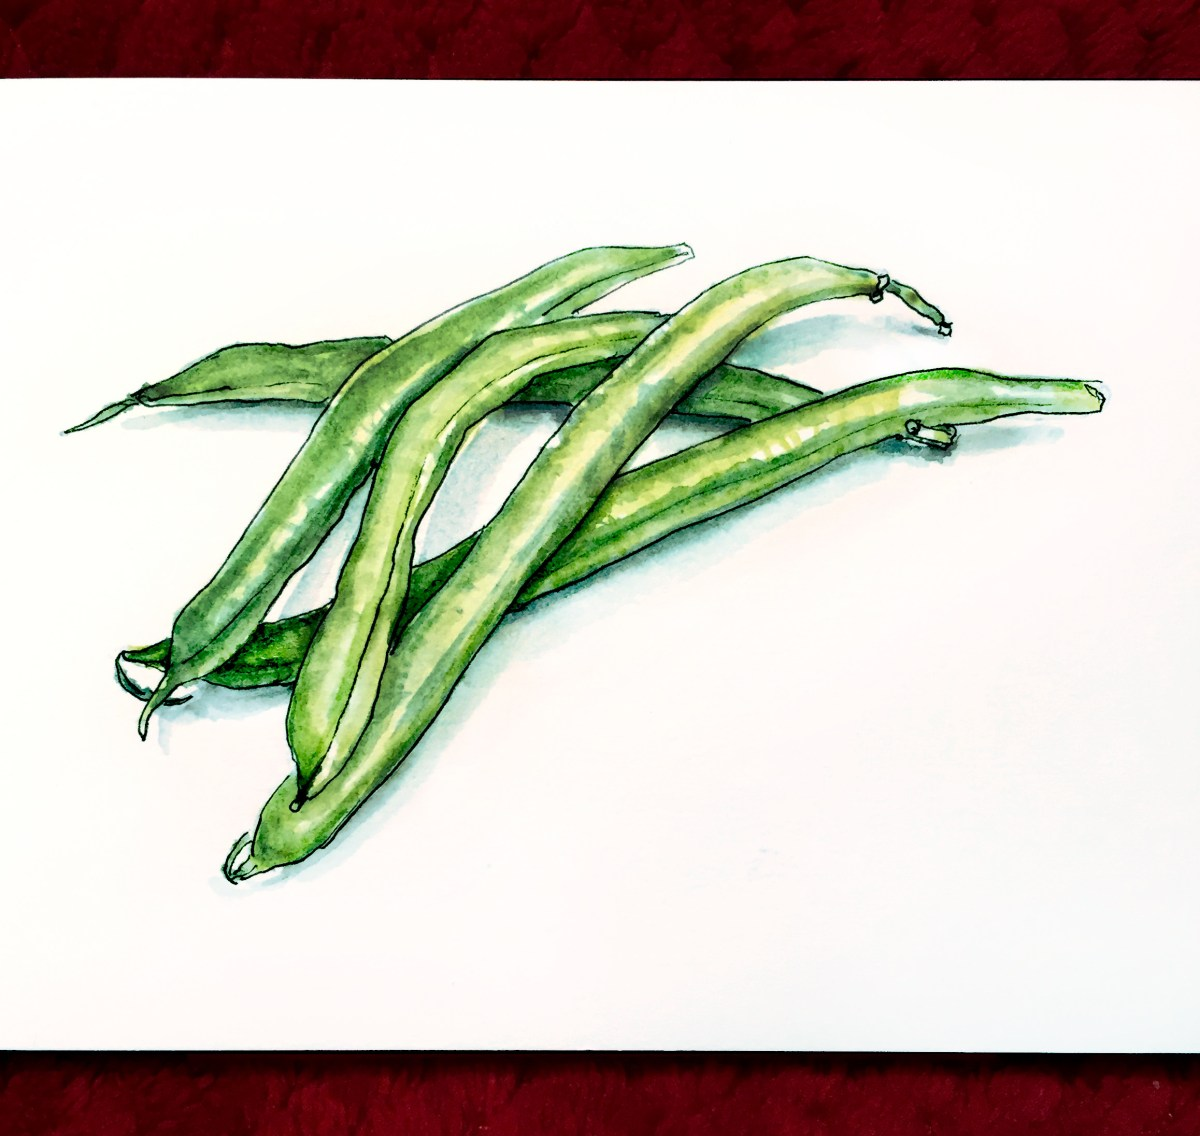 Day 18 - Les Haricots Verts Green Beans watercolour sketch